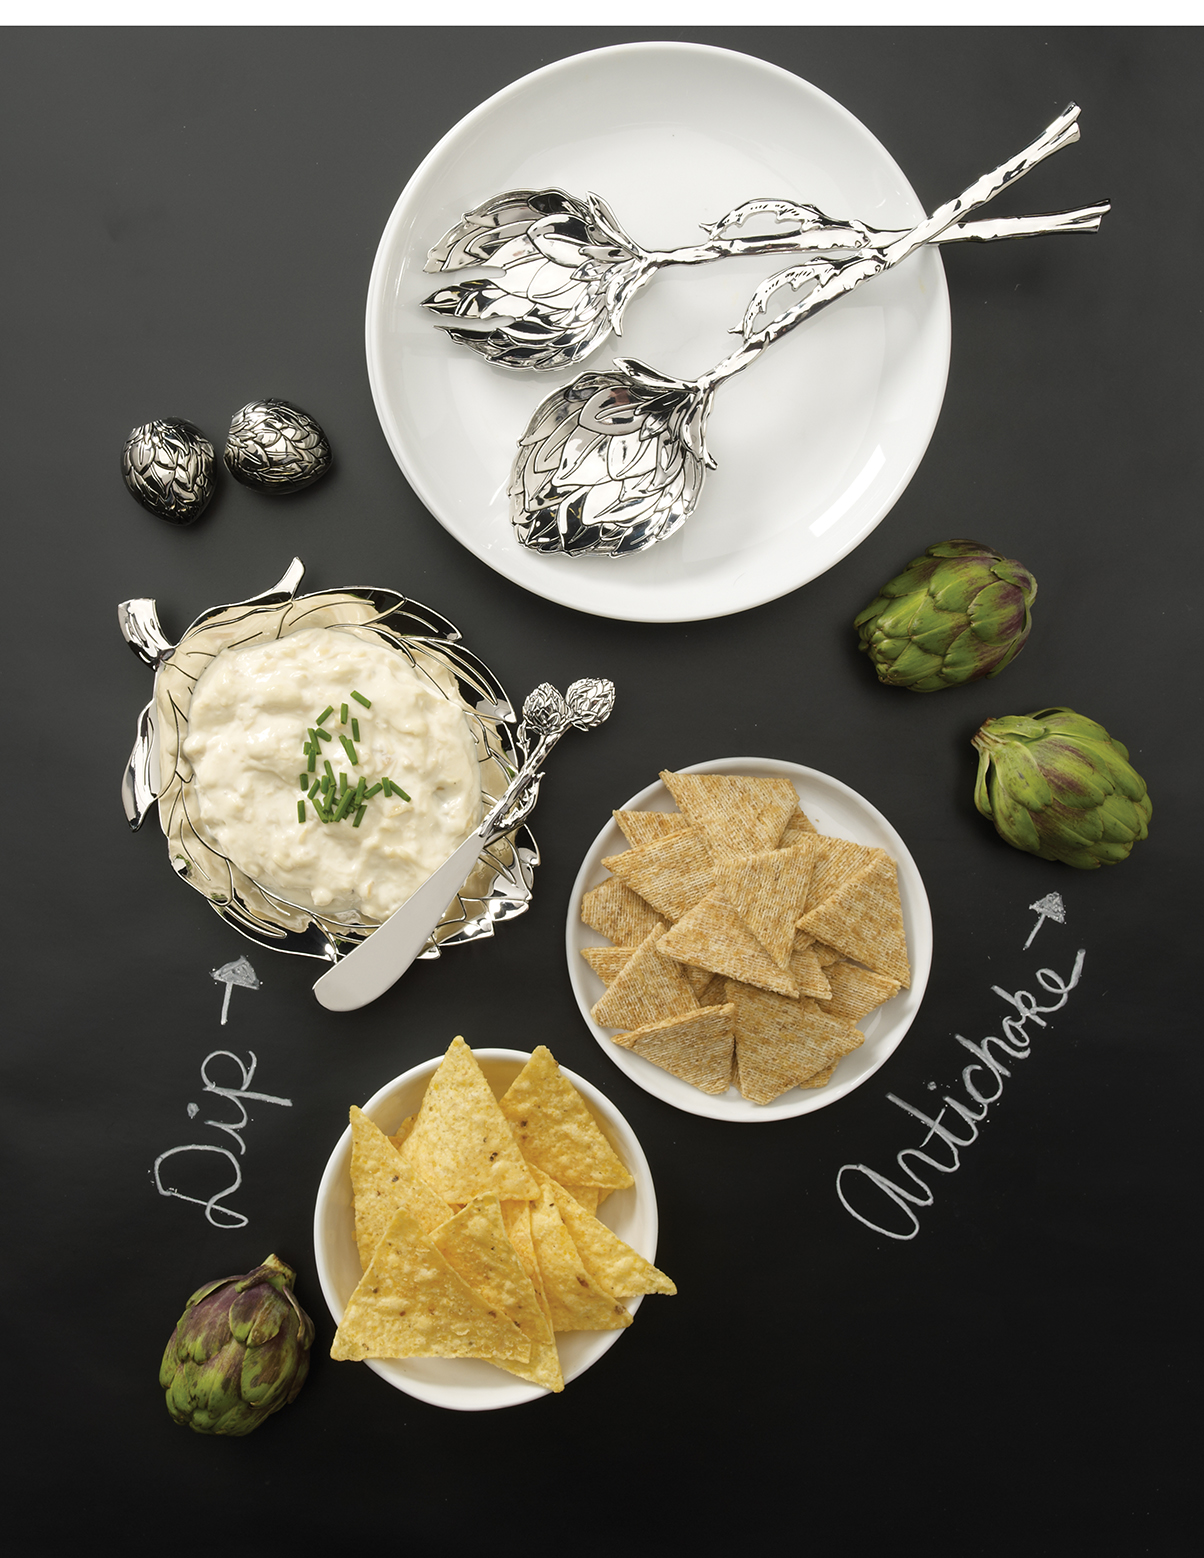 Photography - Dip on Table with Plates